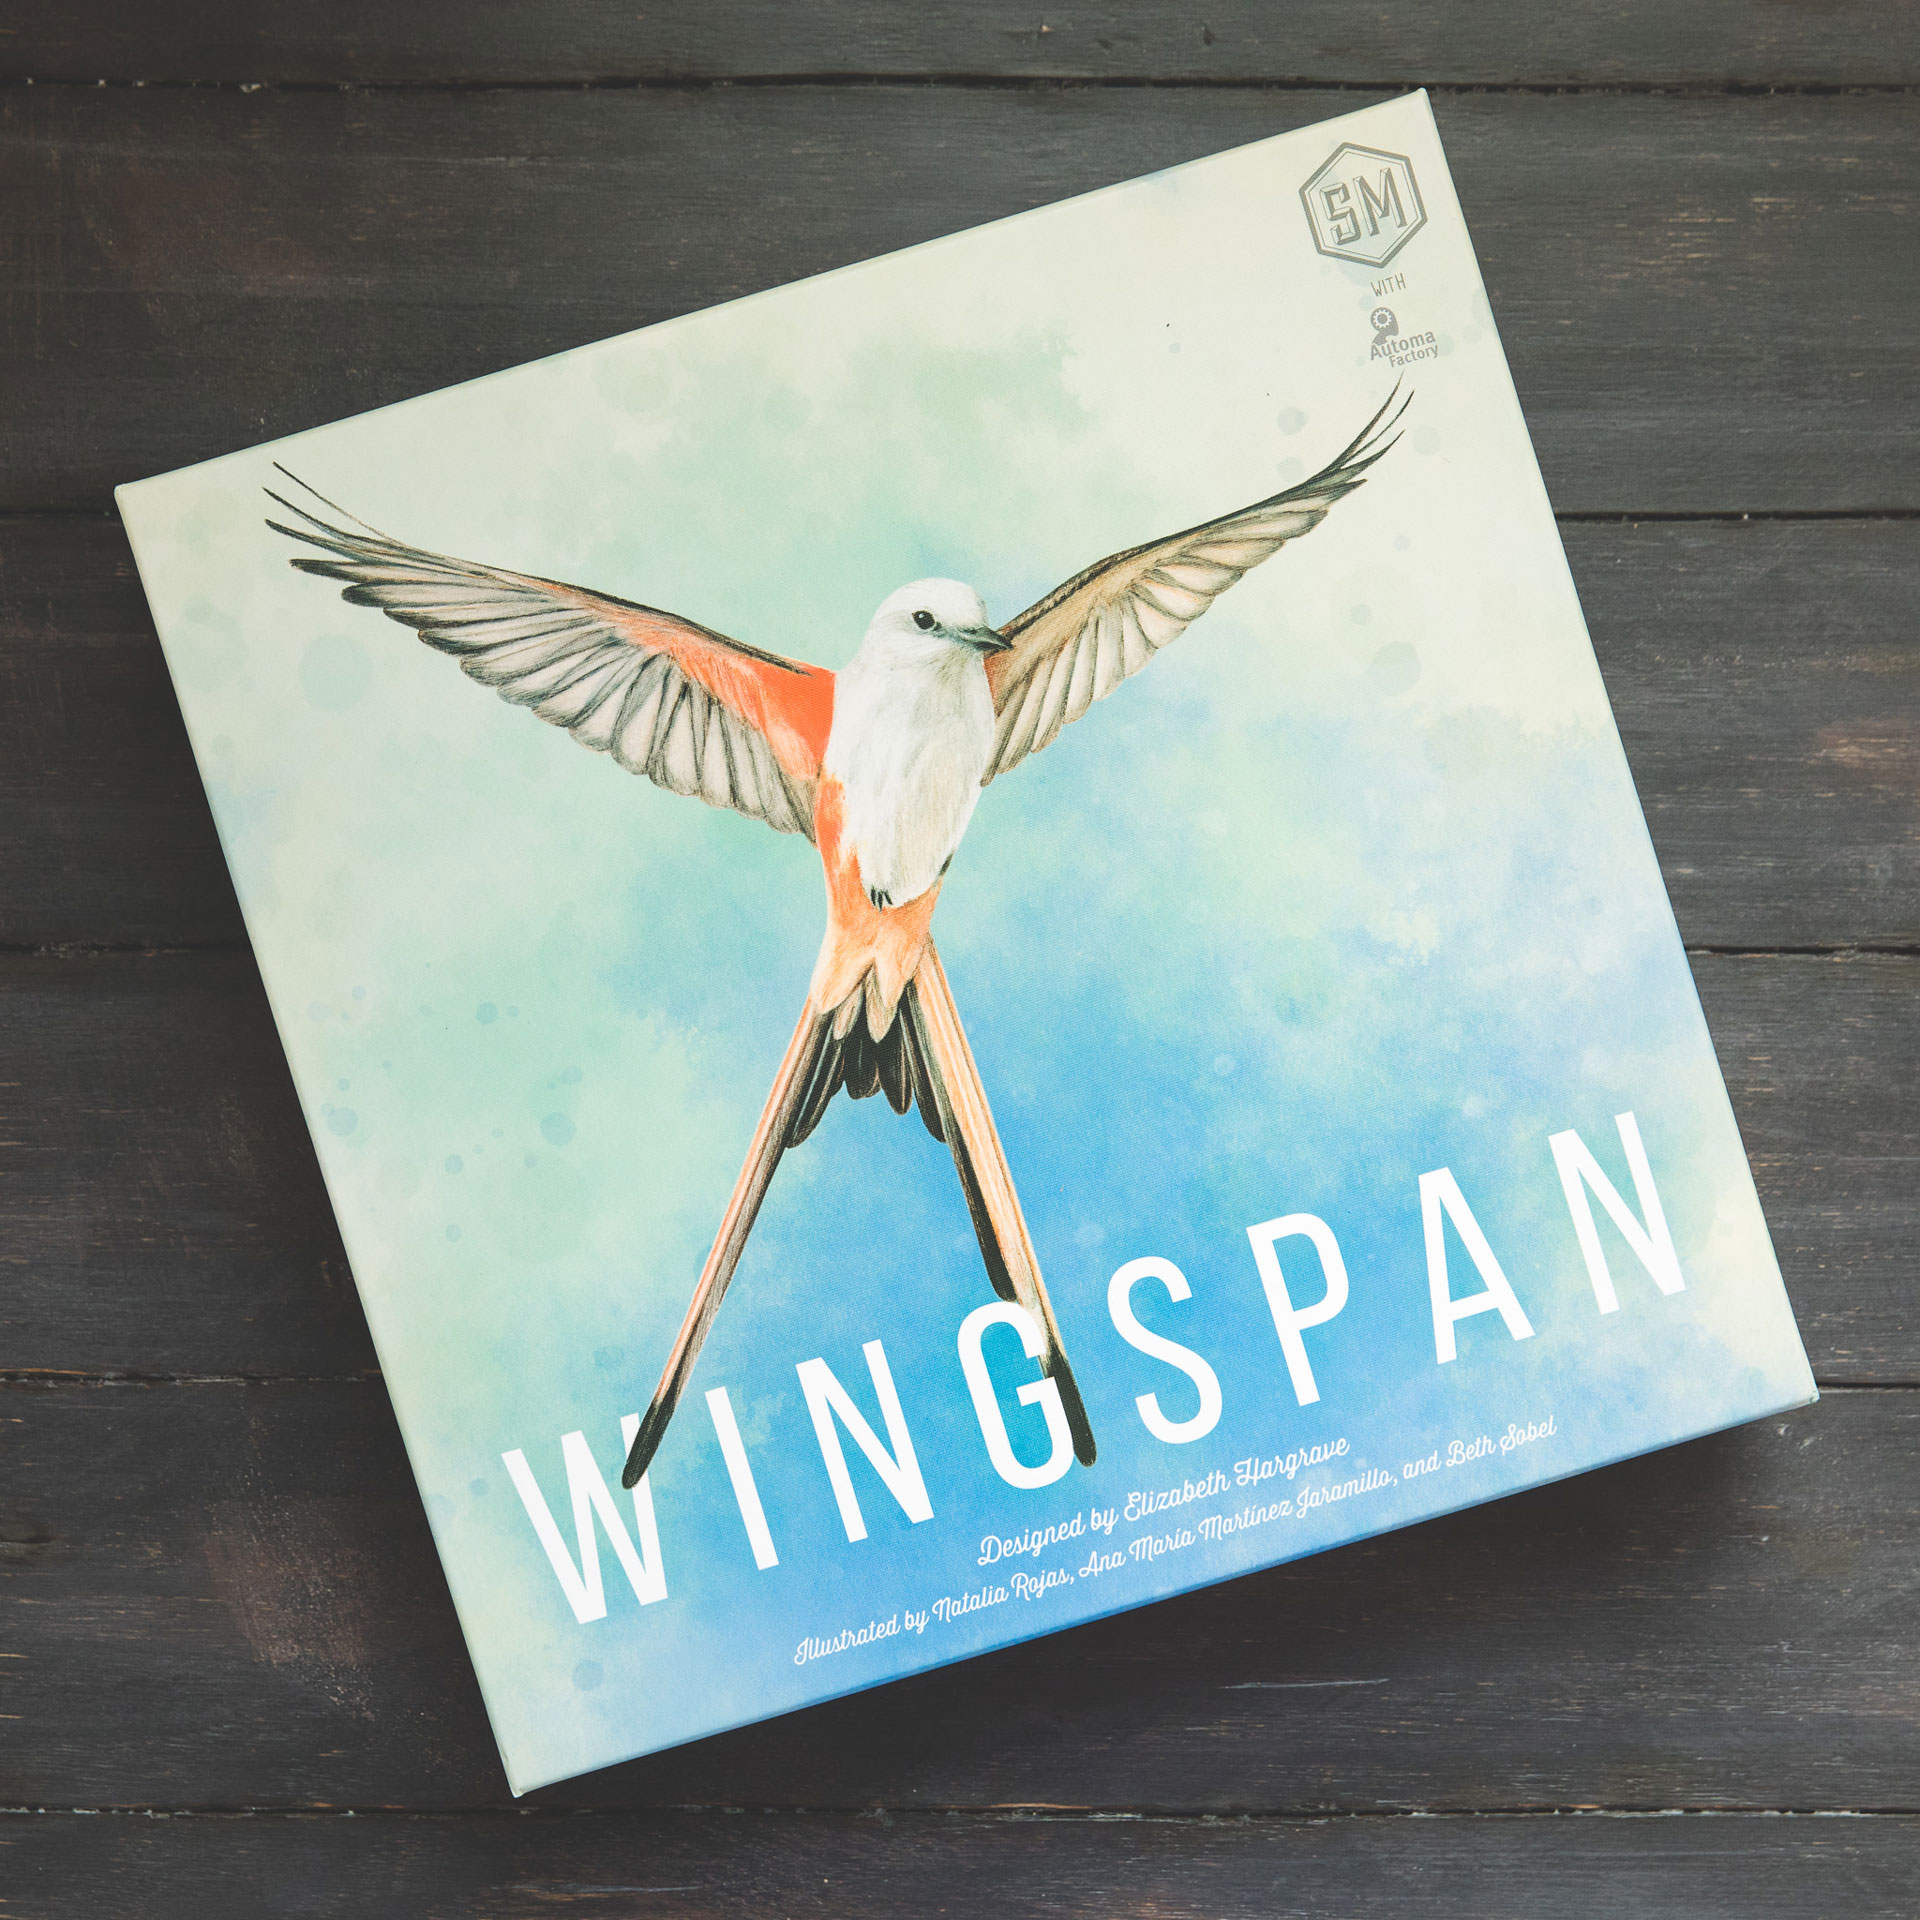 Wingspan board game box inspiration of photographer Alexi Hobbs